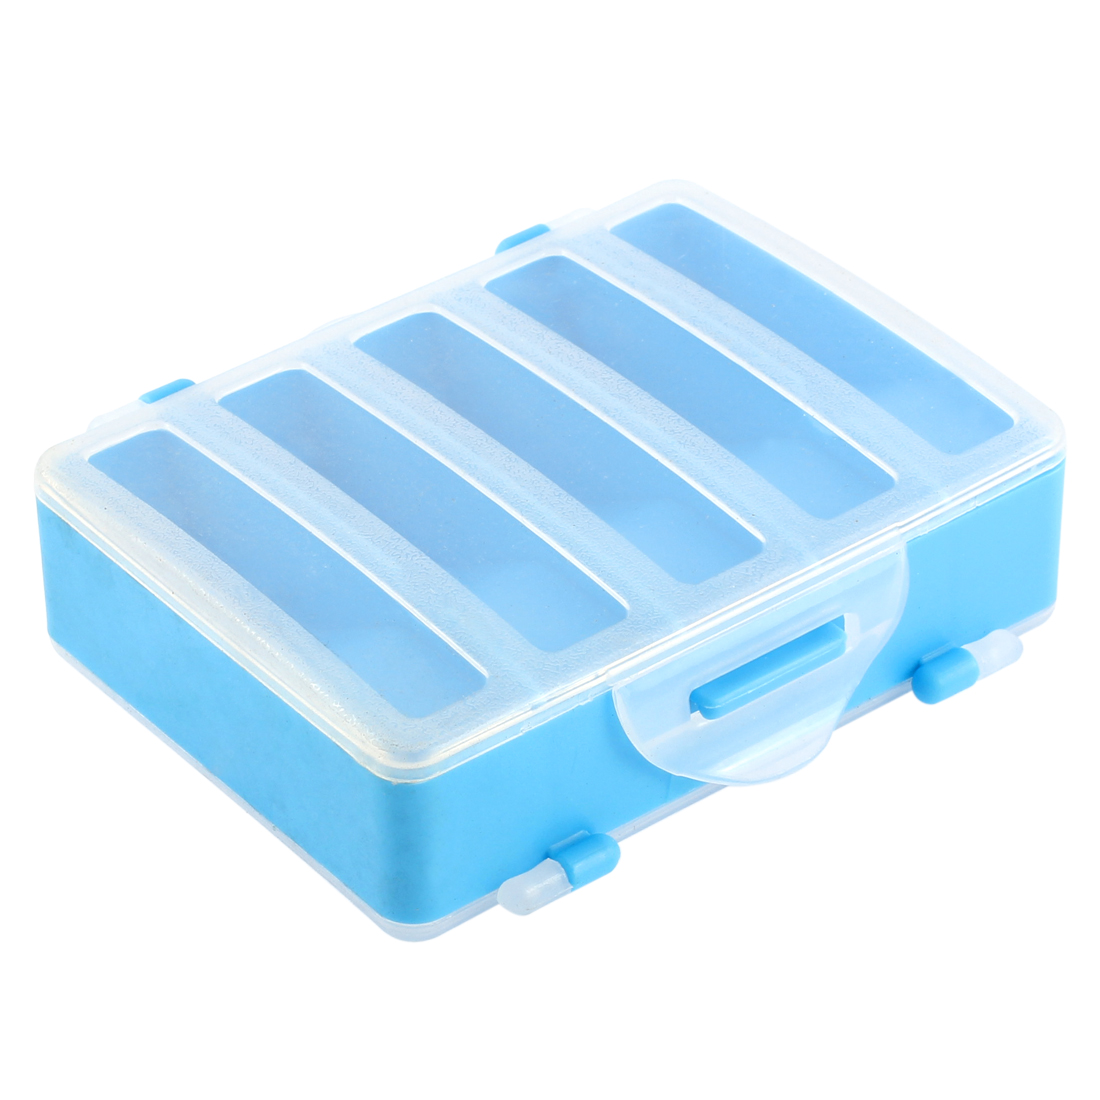 Plastic Dual Sides 10 Slots Fishing Angling Bait Storage Case Organizer